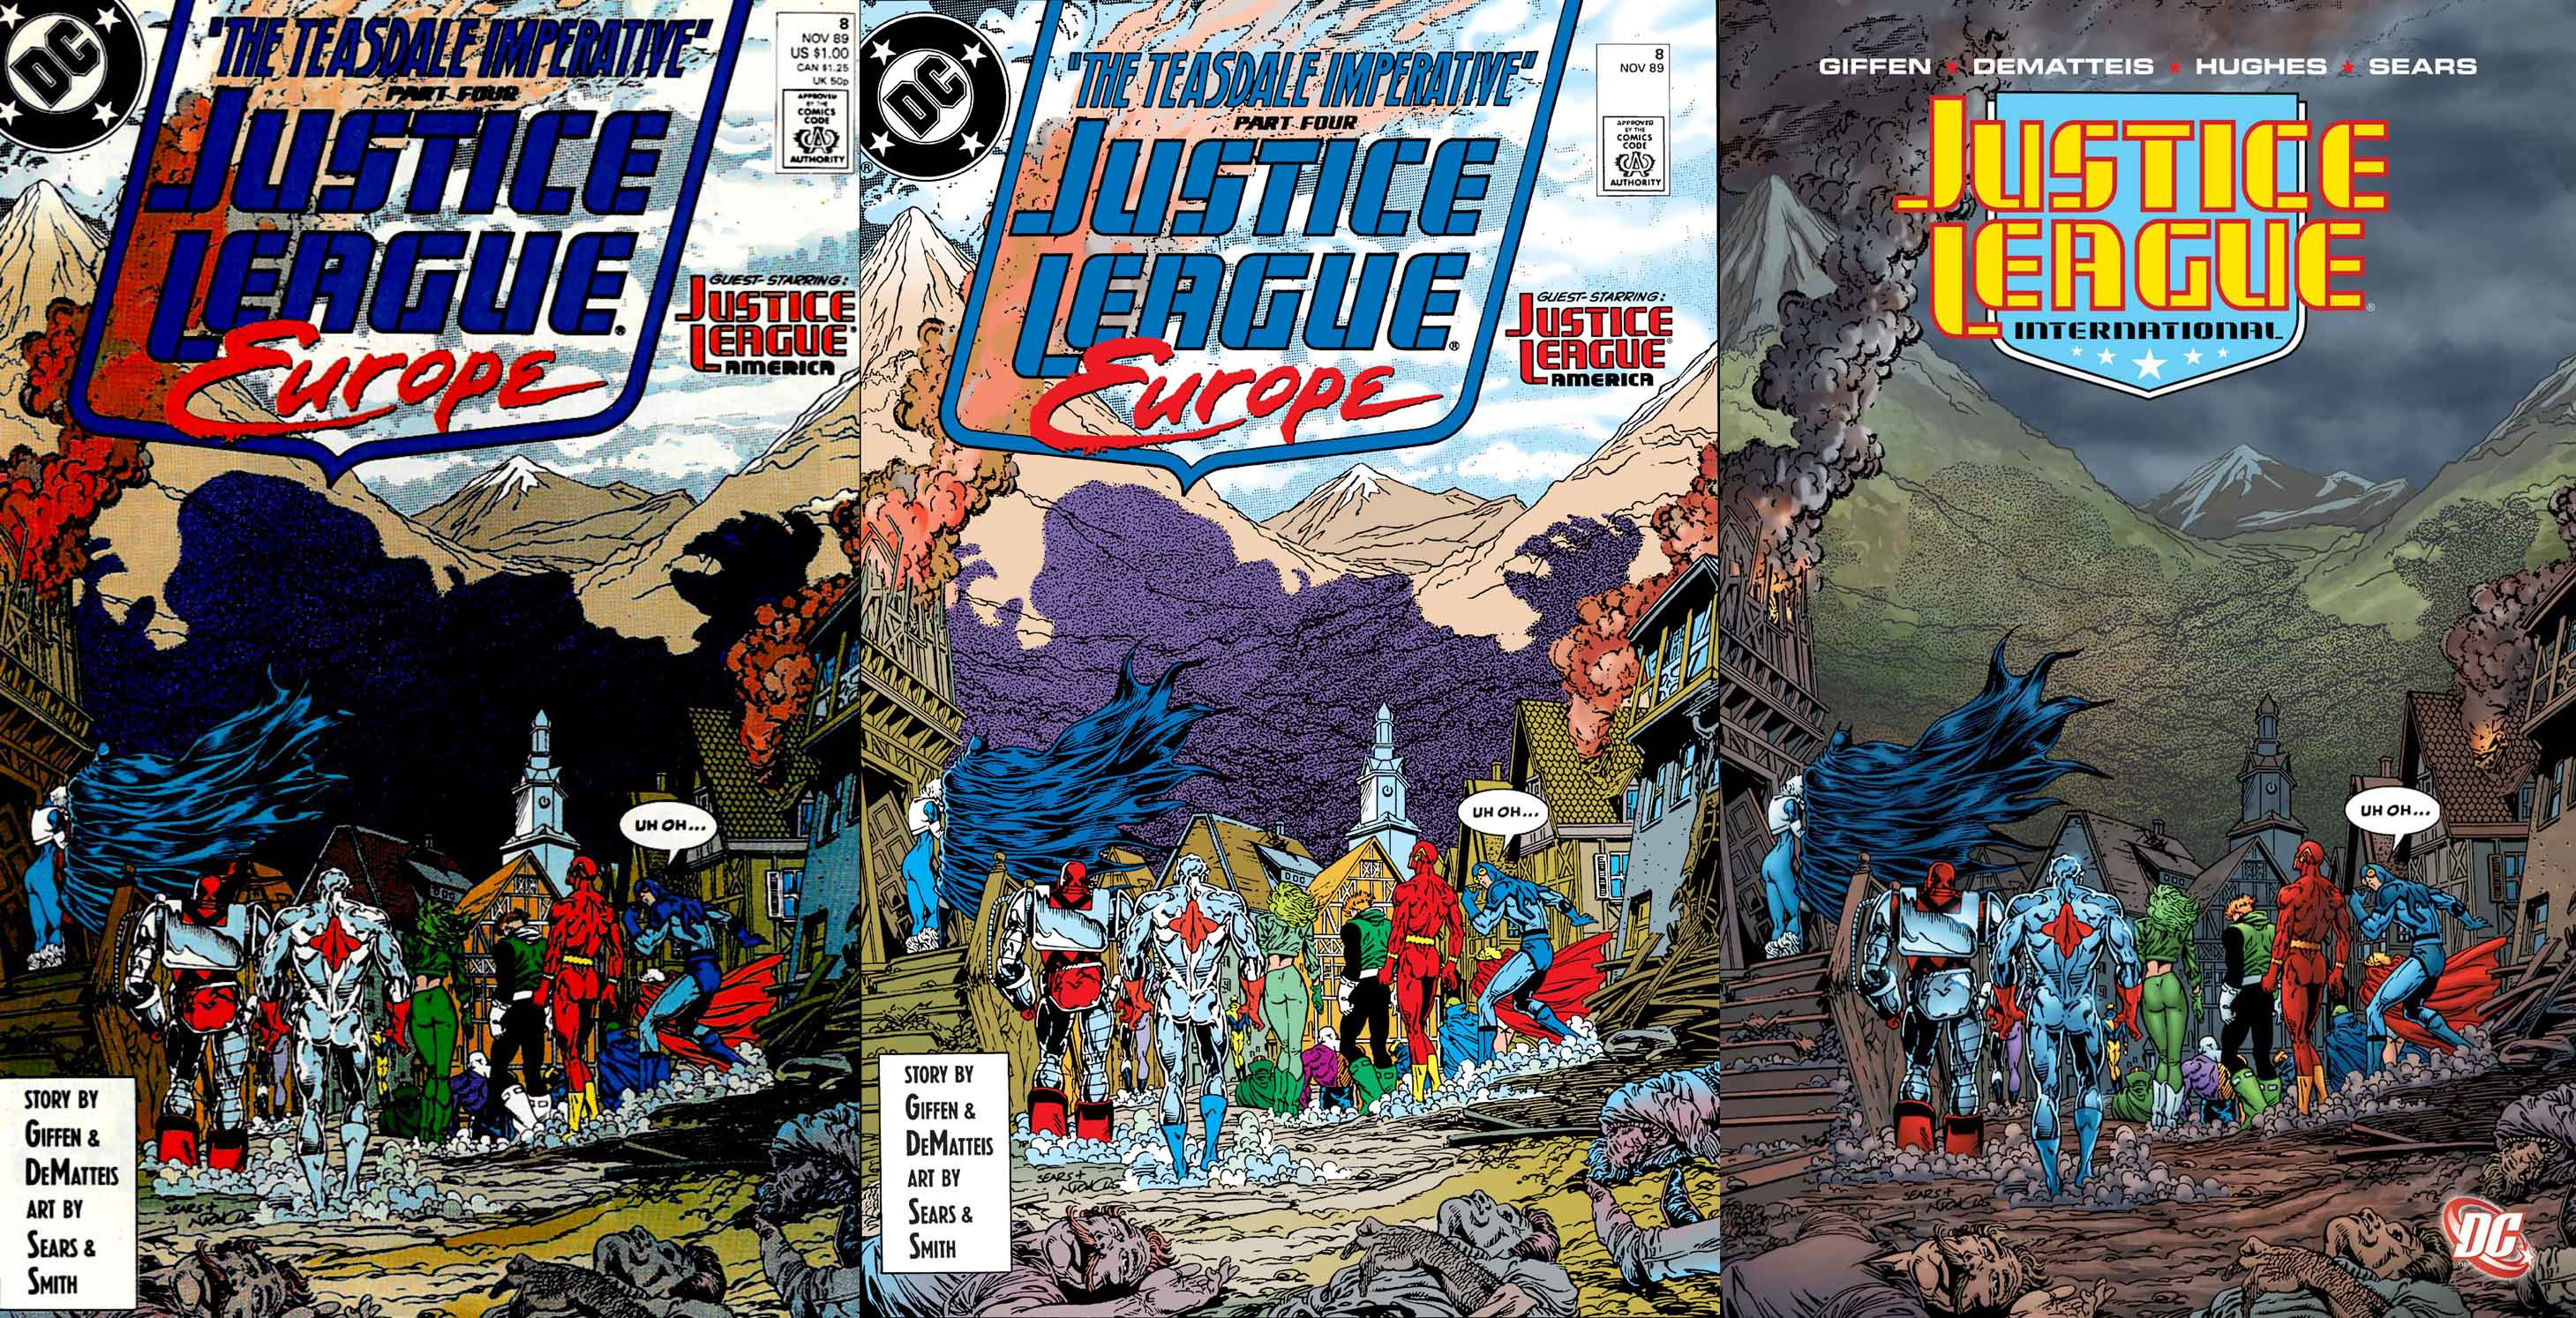 Justice League Europe #8 cover by Bart Sears and Art Nichols